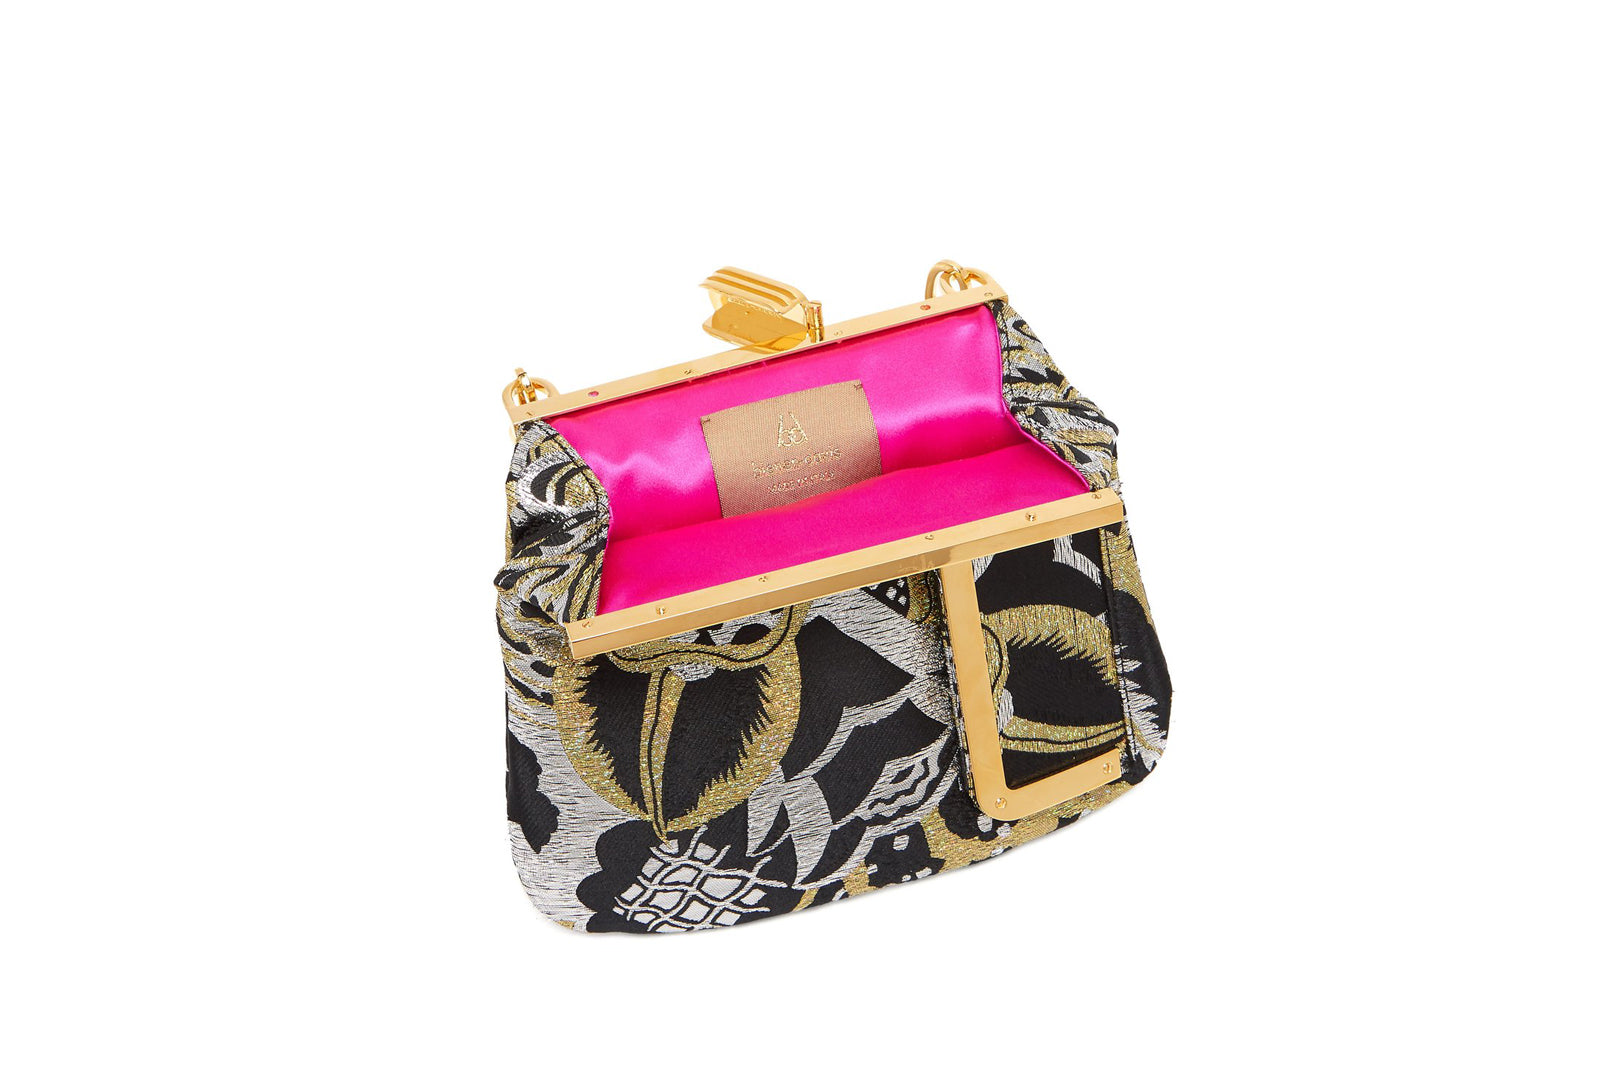 5 AM Clutch in Art Disco Holographic Metallic Lurex Jacquard with 24K Gold Dipped Hardware